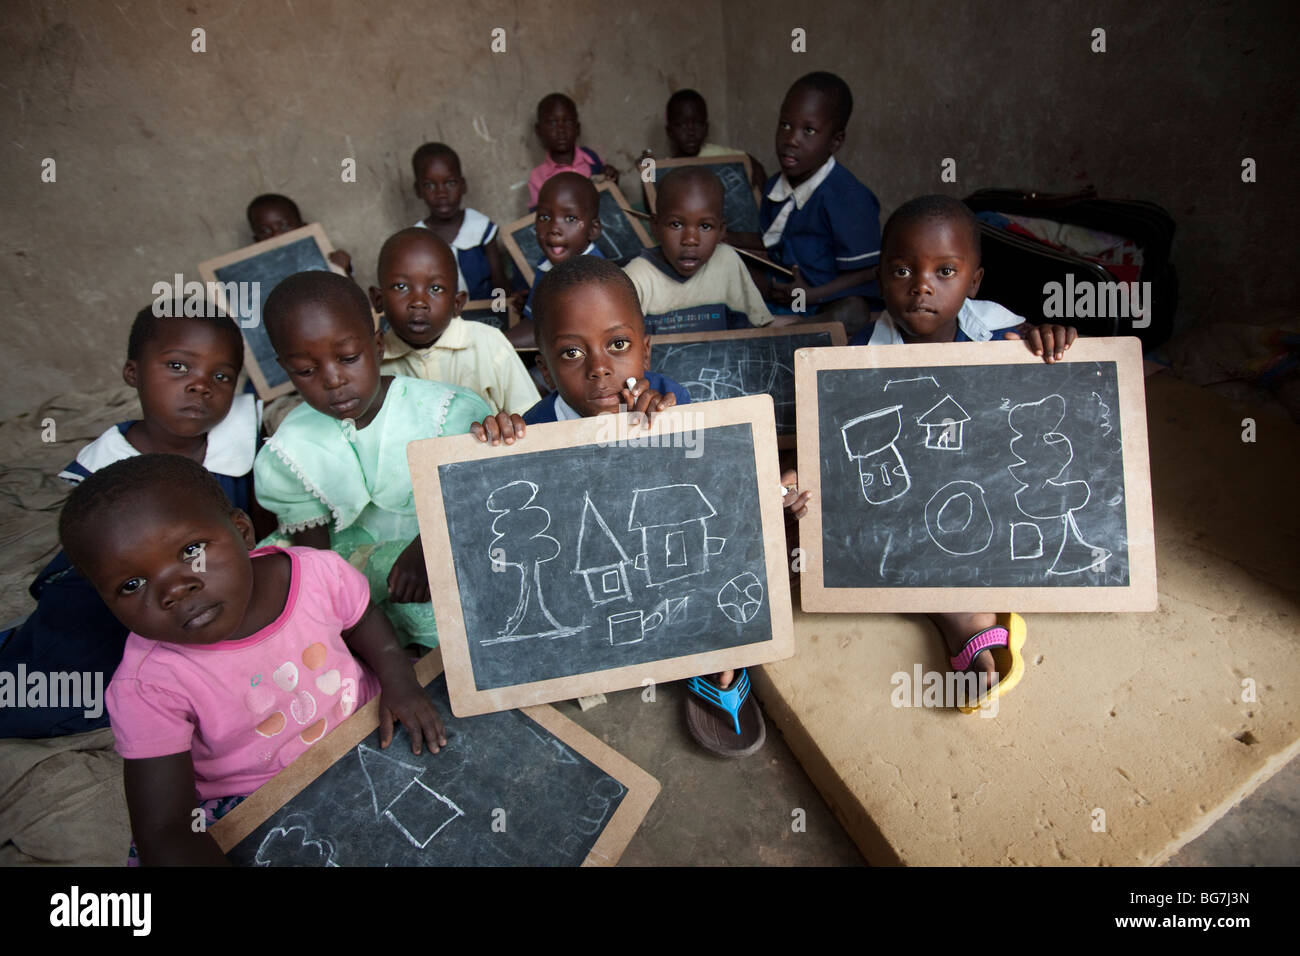 Young children display drawings in an orphanage in Amuria, Uganda, East Africa. - Stock Image